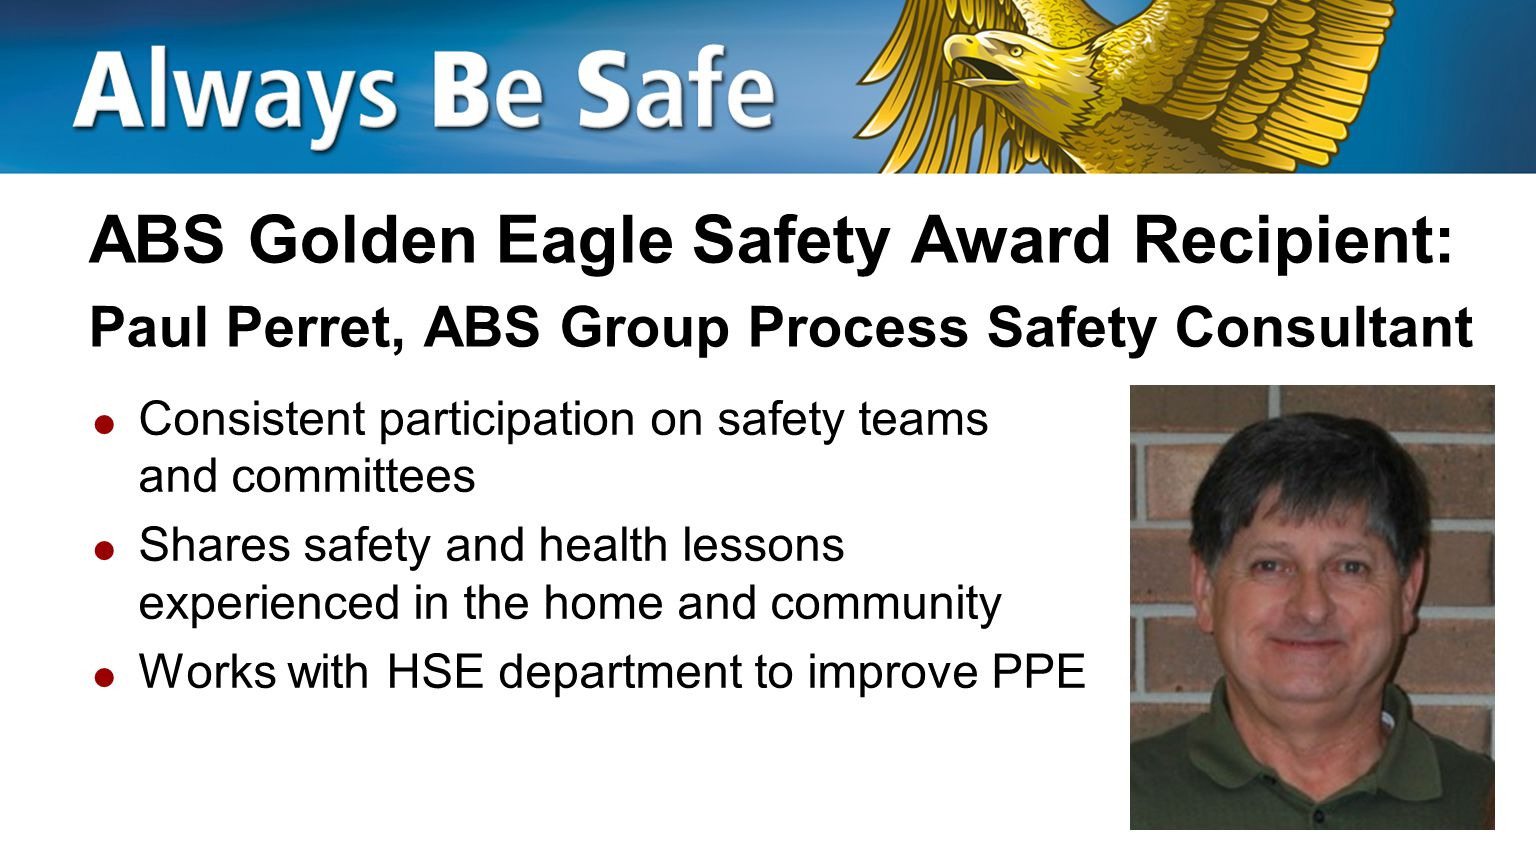 ABS Golden Eagle Safety Award Recipient: Paul Perret, ABS Group Process Safety Consultant